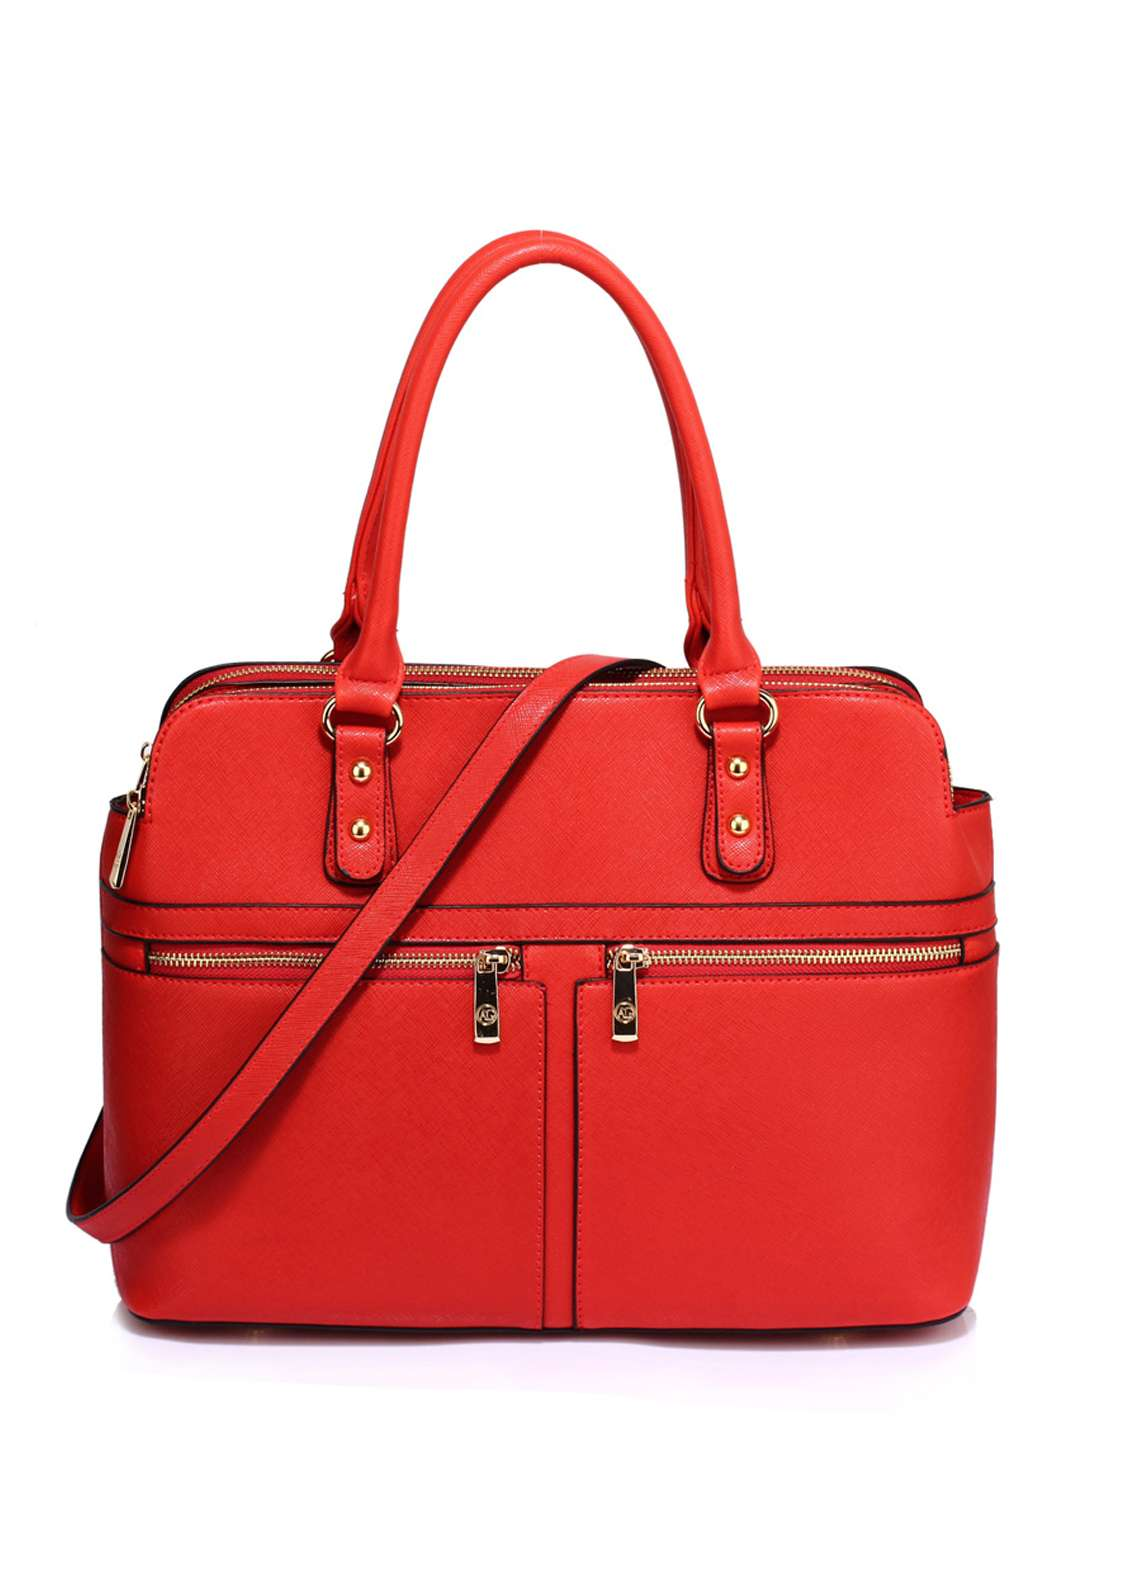 Anna Grace London Soft Faux Leather Shoulder Bags for Women Red with Plain Texture